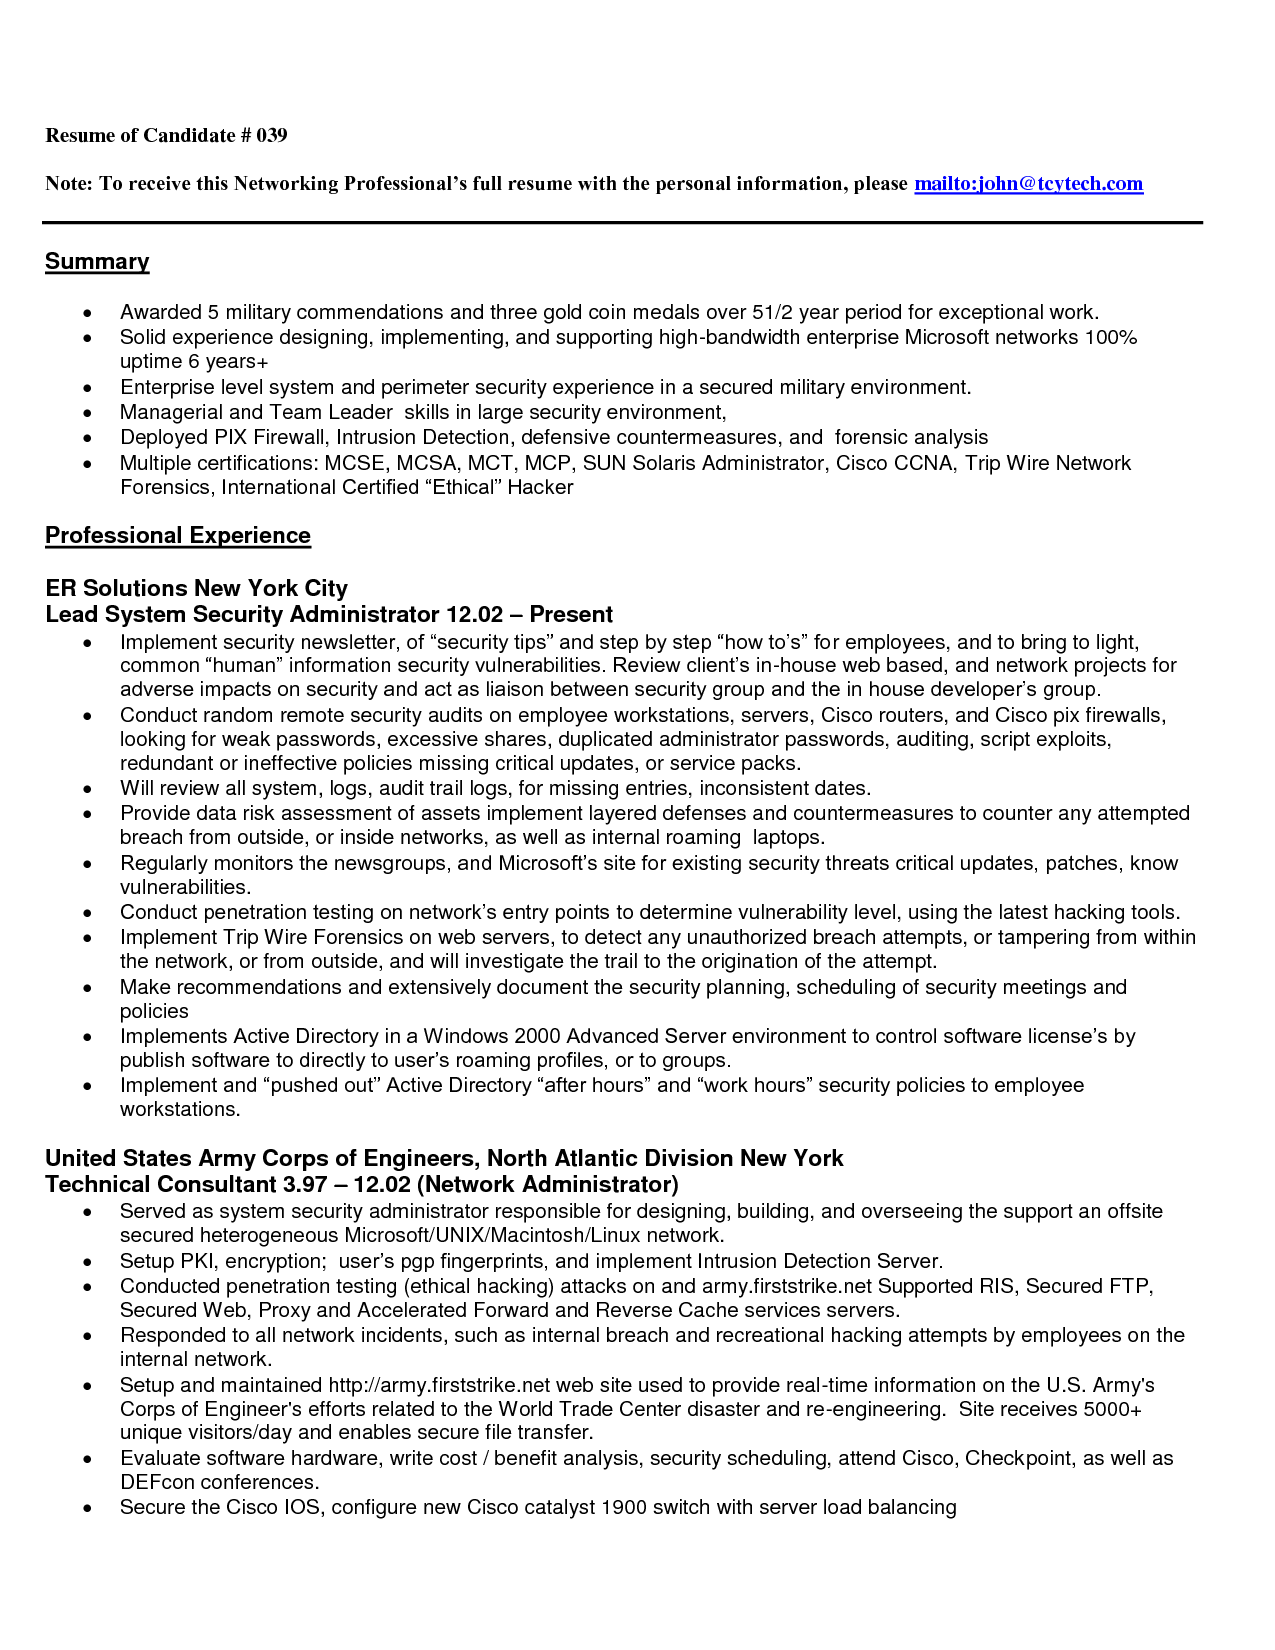 free entry level resumes samplebusinessresume com - Sample Entry Level Resume Templates